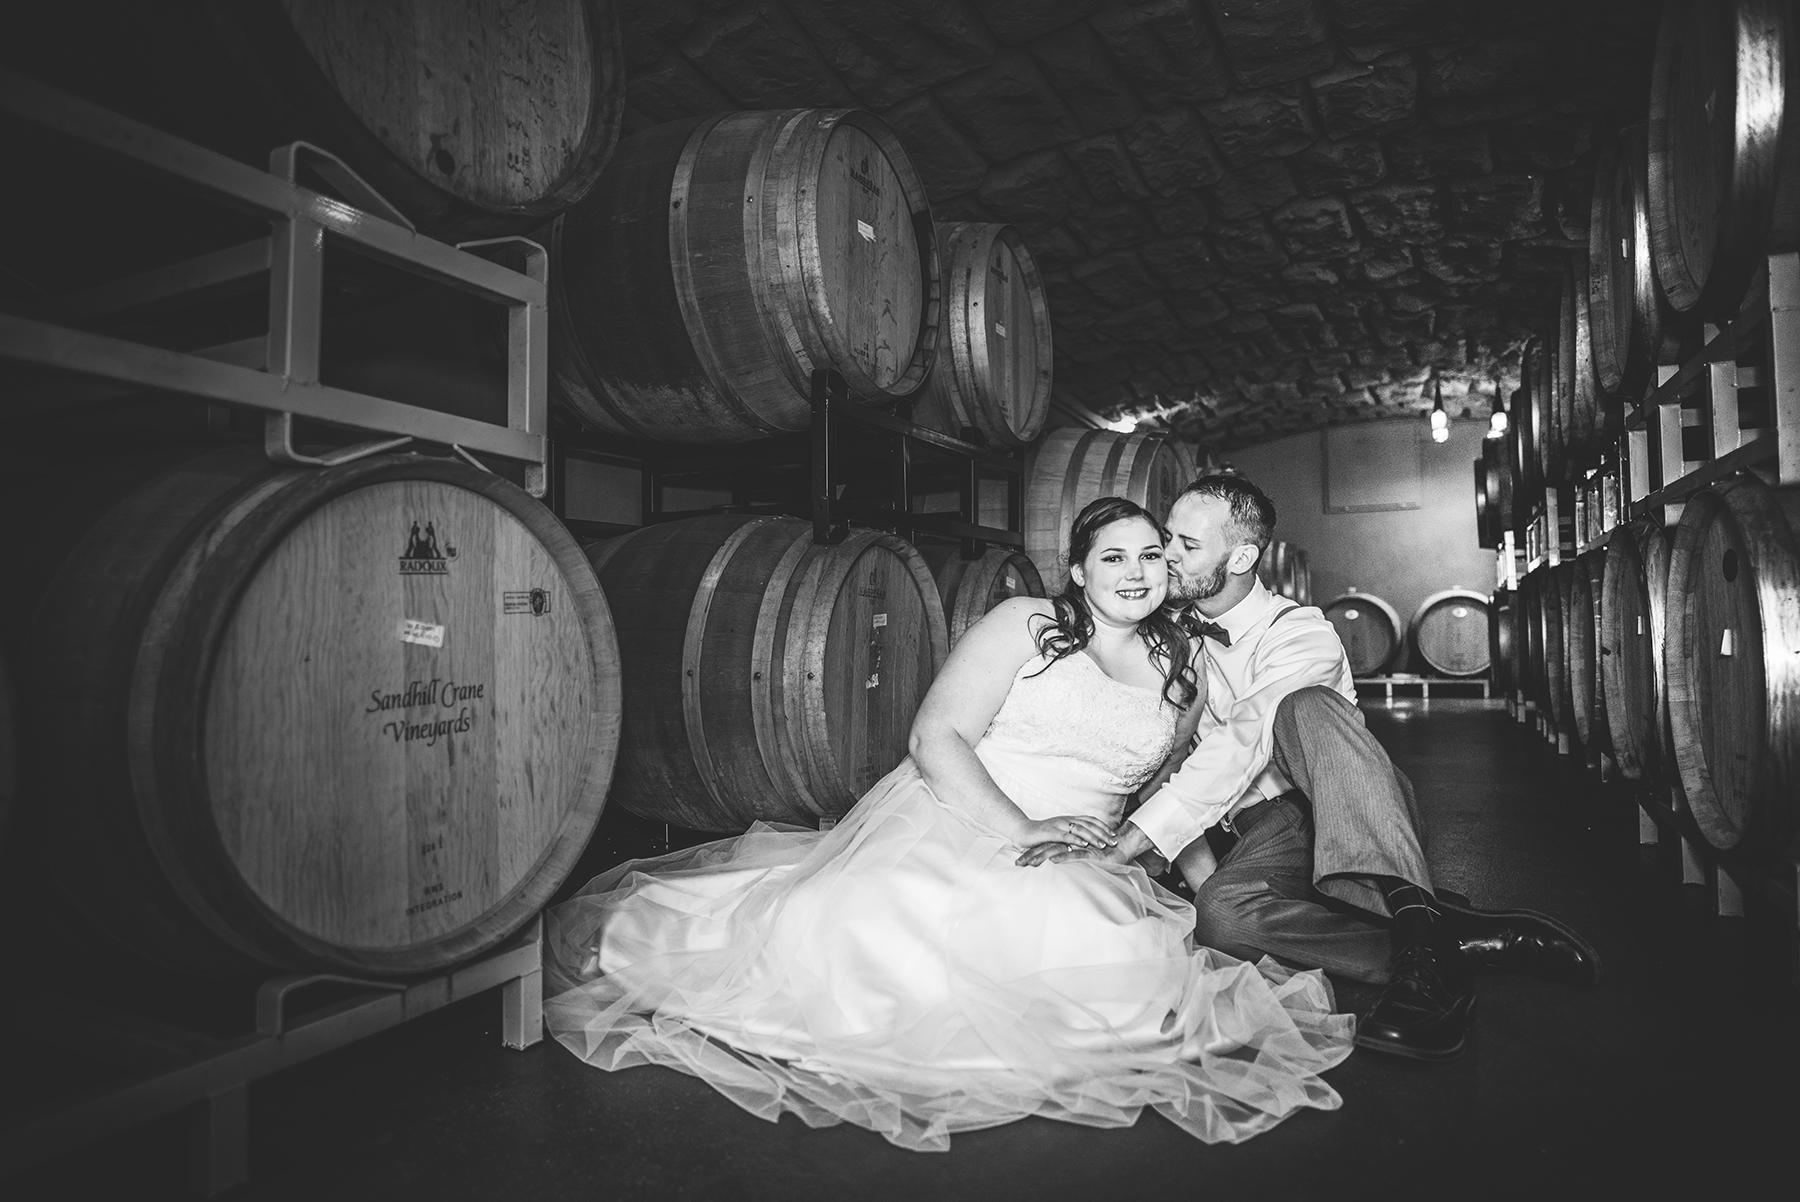 Sandhill Crane Vineyards - Jackson Michigan Wedding